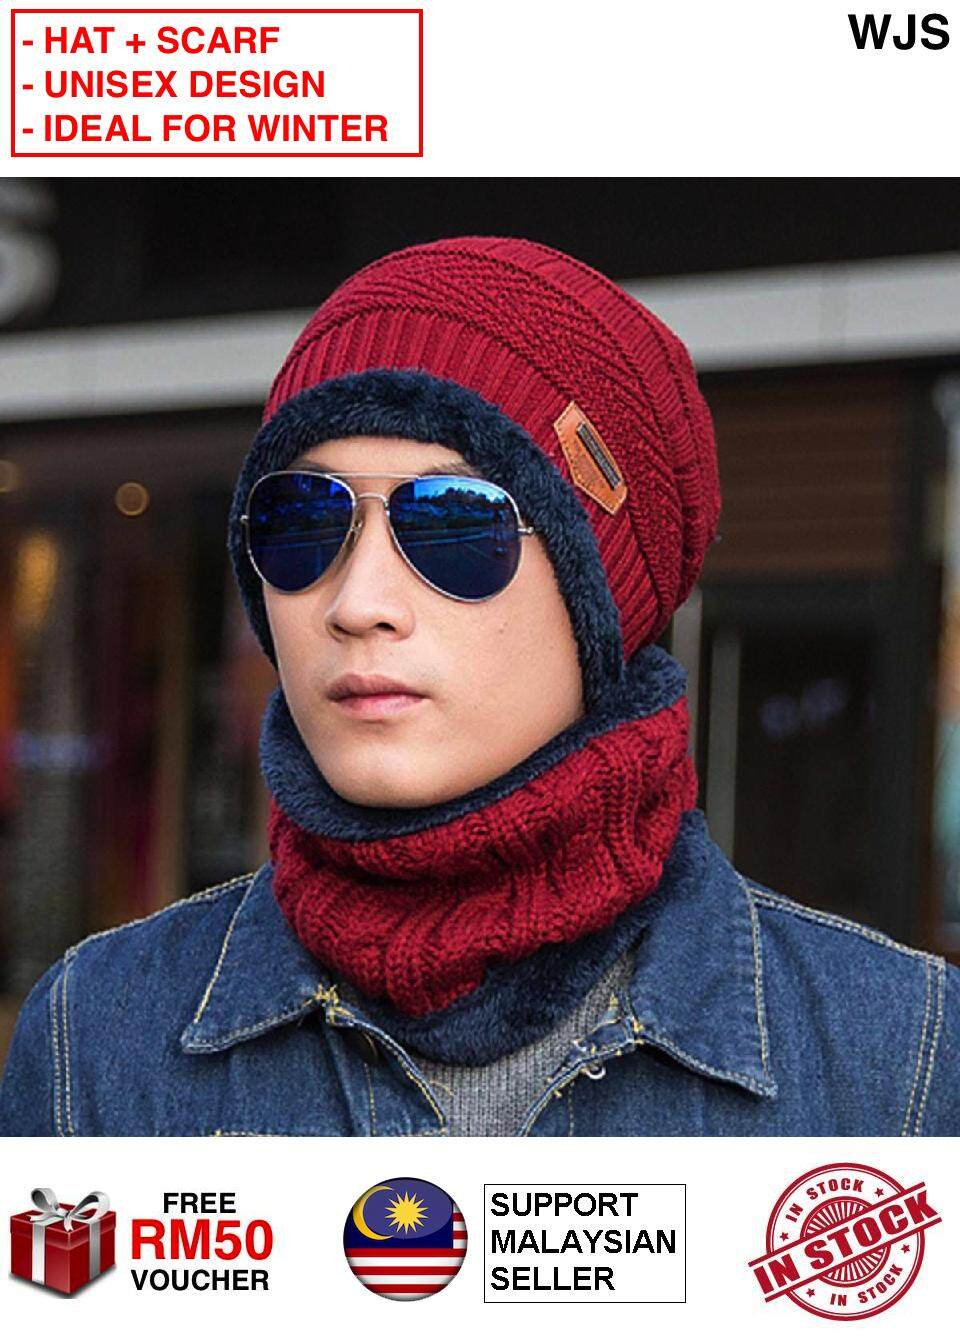 (HAT + SCARF) WJS 2pcs 2 pcs 100% Cotton Winter Hat And Scarf Knit Hat and Neck Warmer Scarf Set Unisex Men Women Thick Knitted Skull Cap Beanie Hat Warm Scarf BLACK GREY BROWN RED NAVY BLUE [FREE RM 50 VOUCHER]